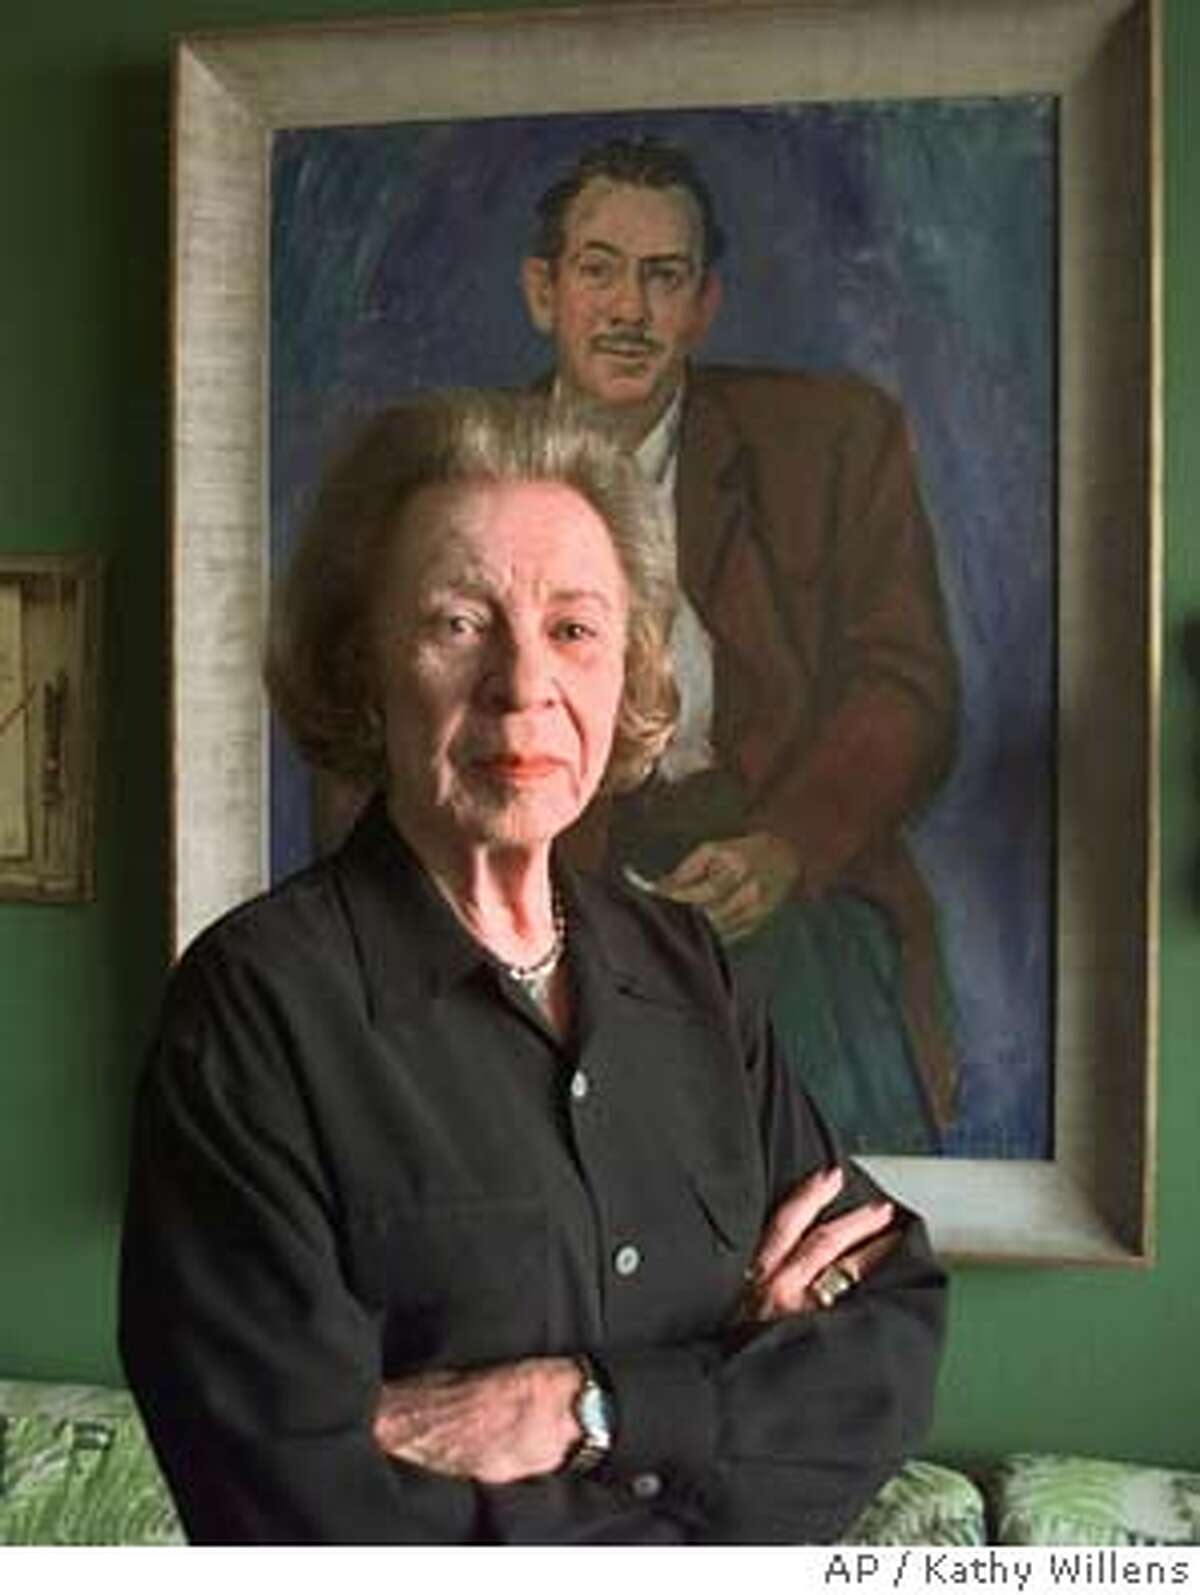 """Elaine Steinbeck poses in front of a painting of her late husband John in the library/study of her New York city apartment in this May 7, 1998 file photo. John Steinbeck's surviving blood heirs are suing the estate of his third wife, Elaine Steinbeck, alleging a """"30-year hidden conspiracy"""" to cheat them of royalties and copyright control and detailing a bitter family feud. The late writer's son, Thomas Steinbeck, and granddaughter, Blake Smyle, filed suit Thursday, July 15, 2004, in the U.S. District Court in New York, seeking greater ownership of """"The Grapes of Wrath"""" and other Steinbeck classics and monetary damages of at least $18 million. (AP Photo/Kathy Willens, File) MAY 7, 1998 FILE PHOTO"""